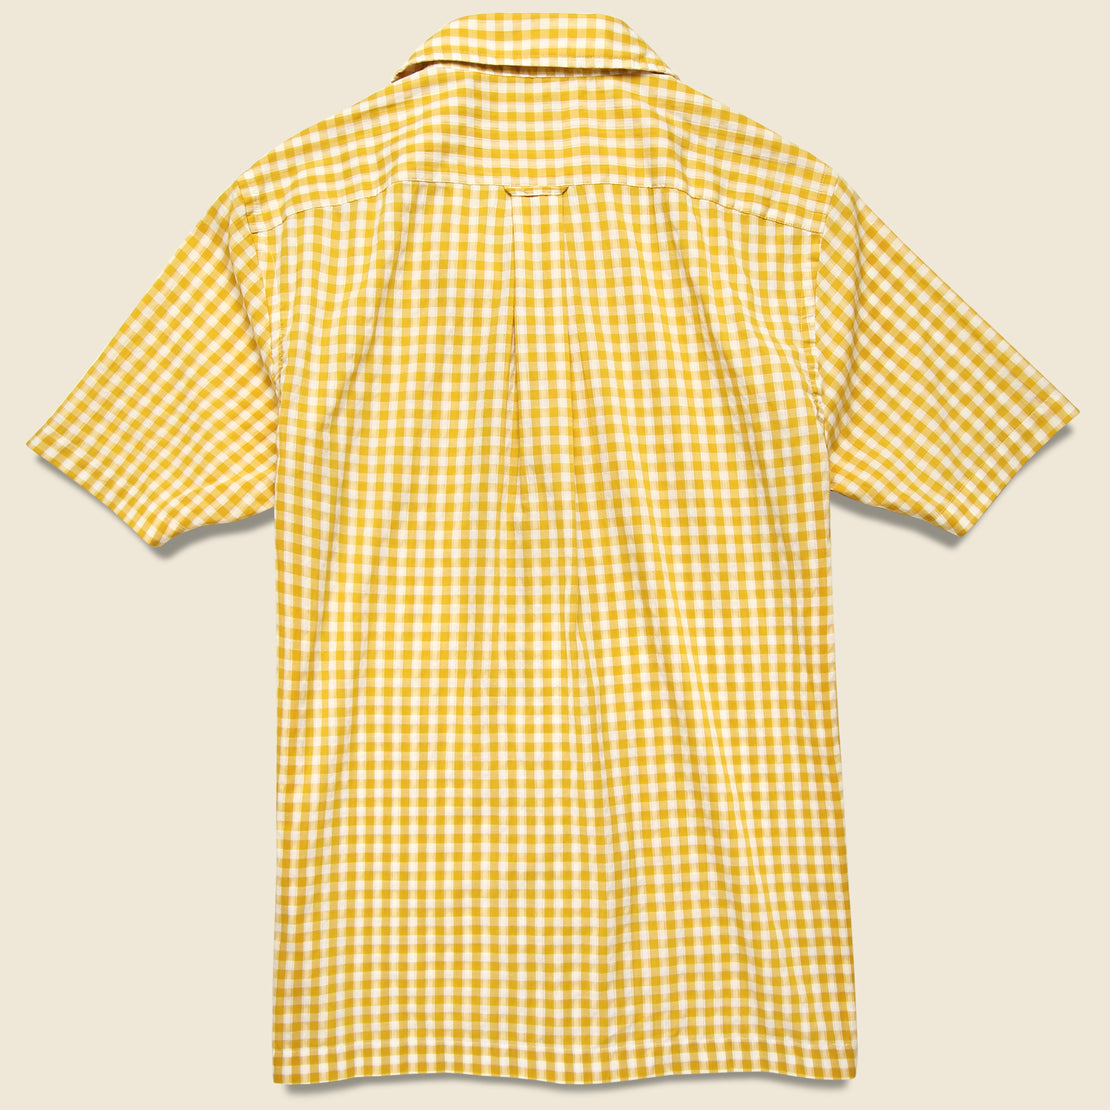 Micro Gingham Camp Shirt - Yellow